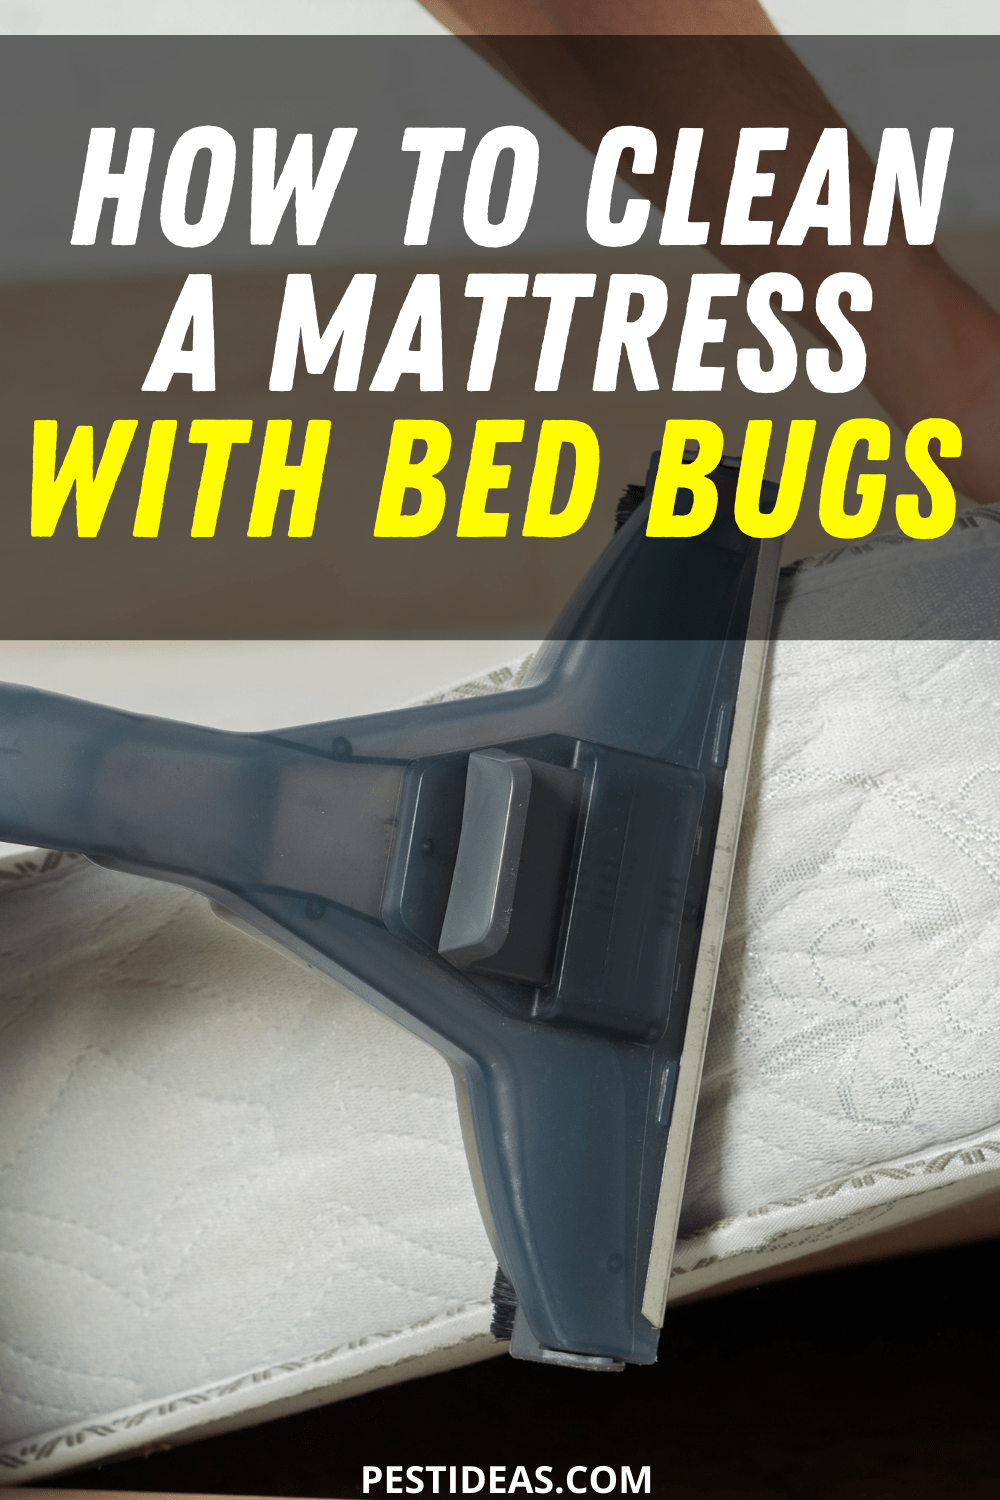 How to Clean a Mattress With Bed Bugs